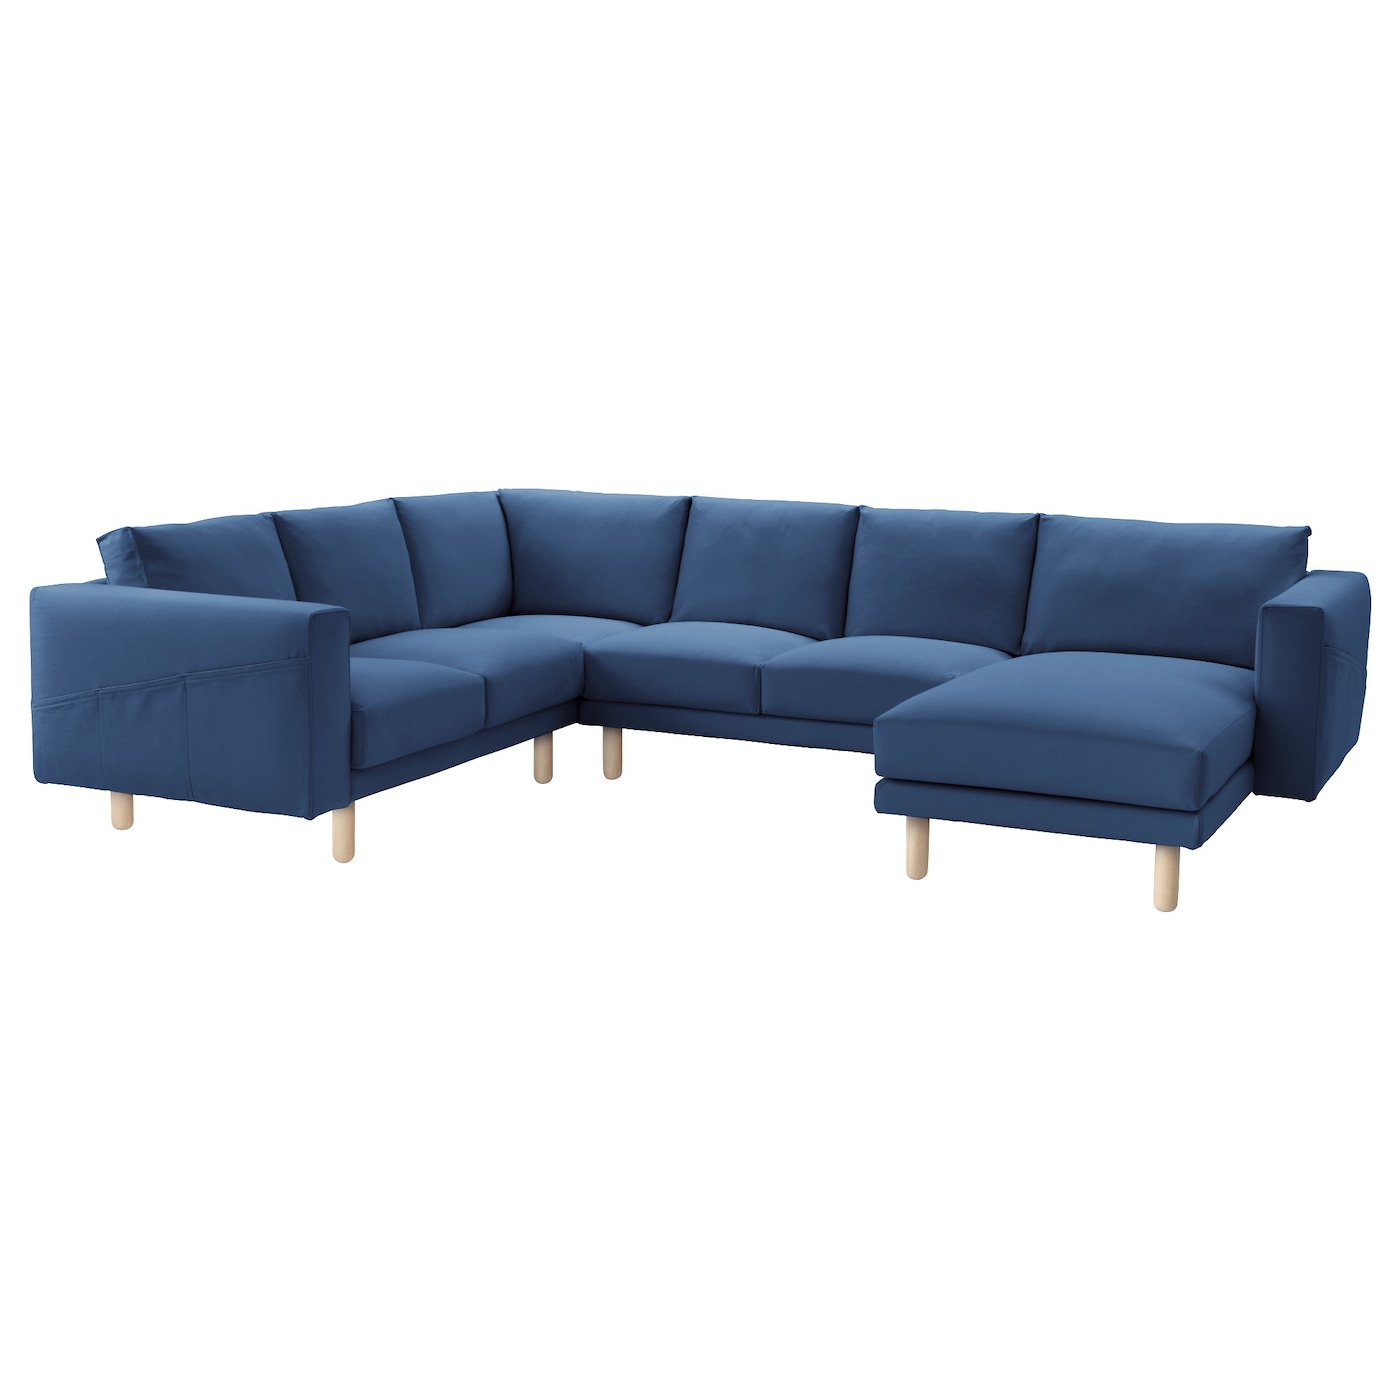 Norsborg corner sofa 2 2 with chaise longue gr sbo dark for Chaise longue corner sofa